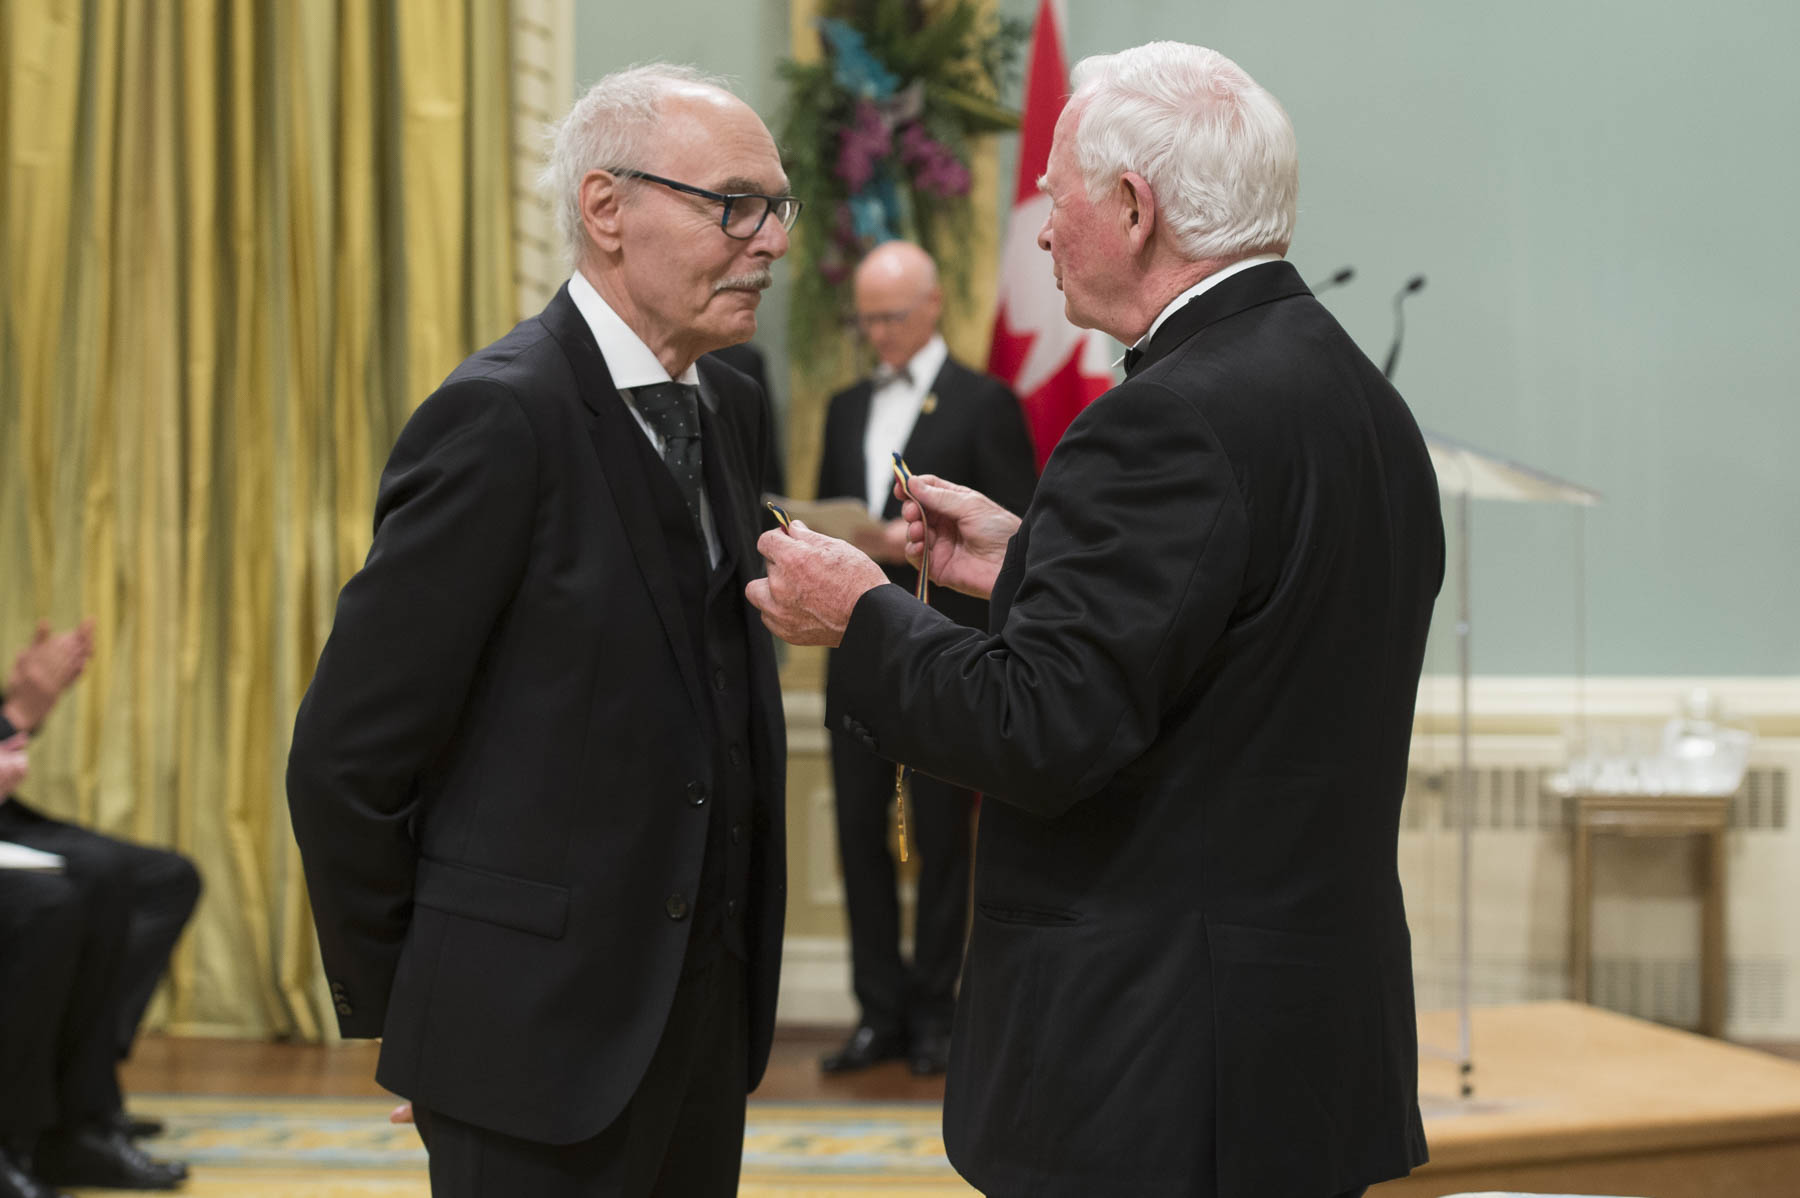 His Excellency presented the Lifetime Artistic Achievement Award to Jean Beaudin, film and television director and screenwriter.